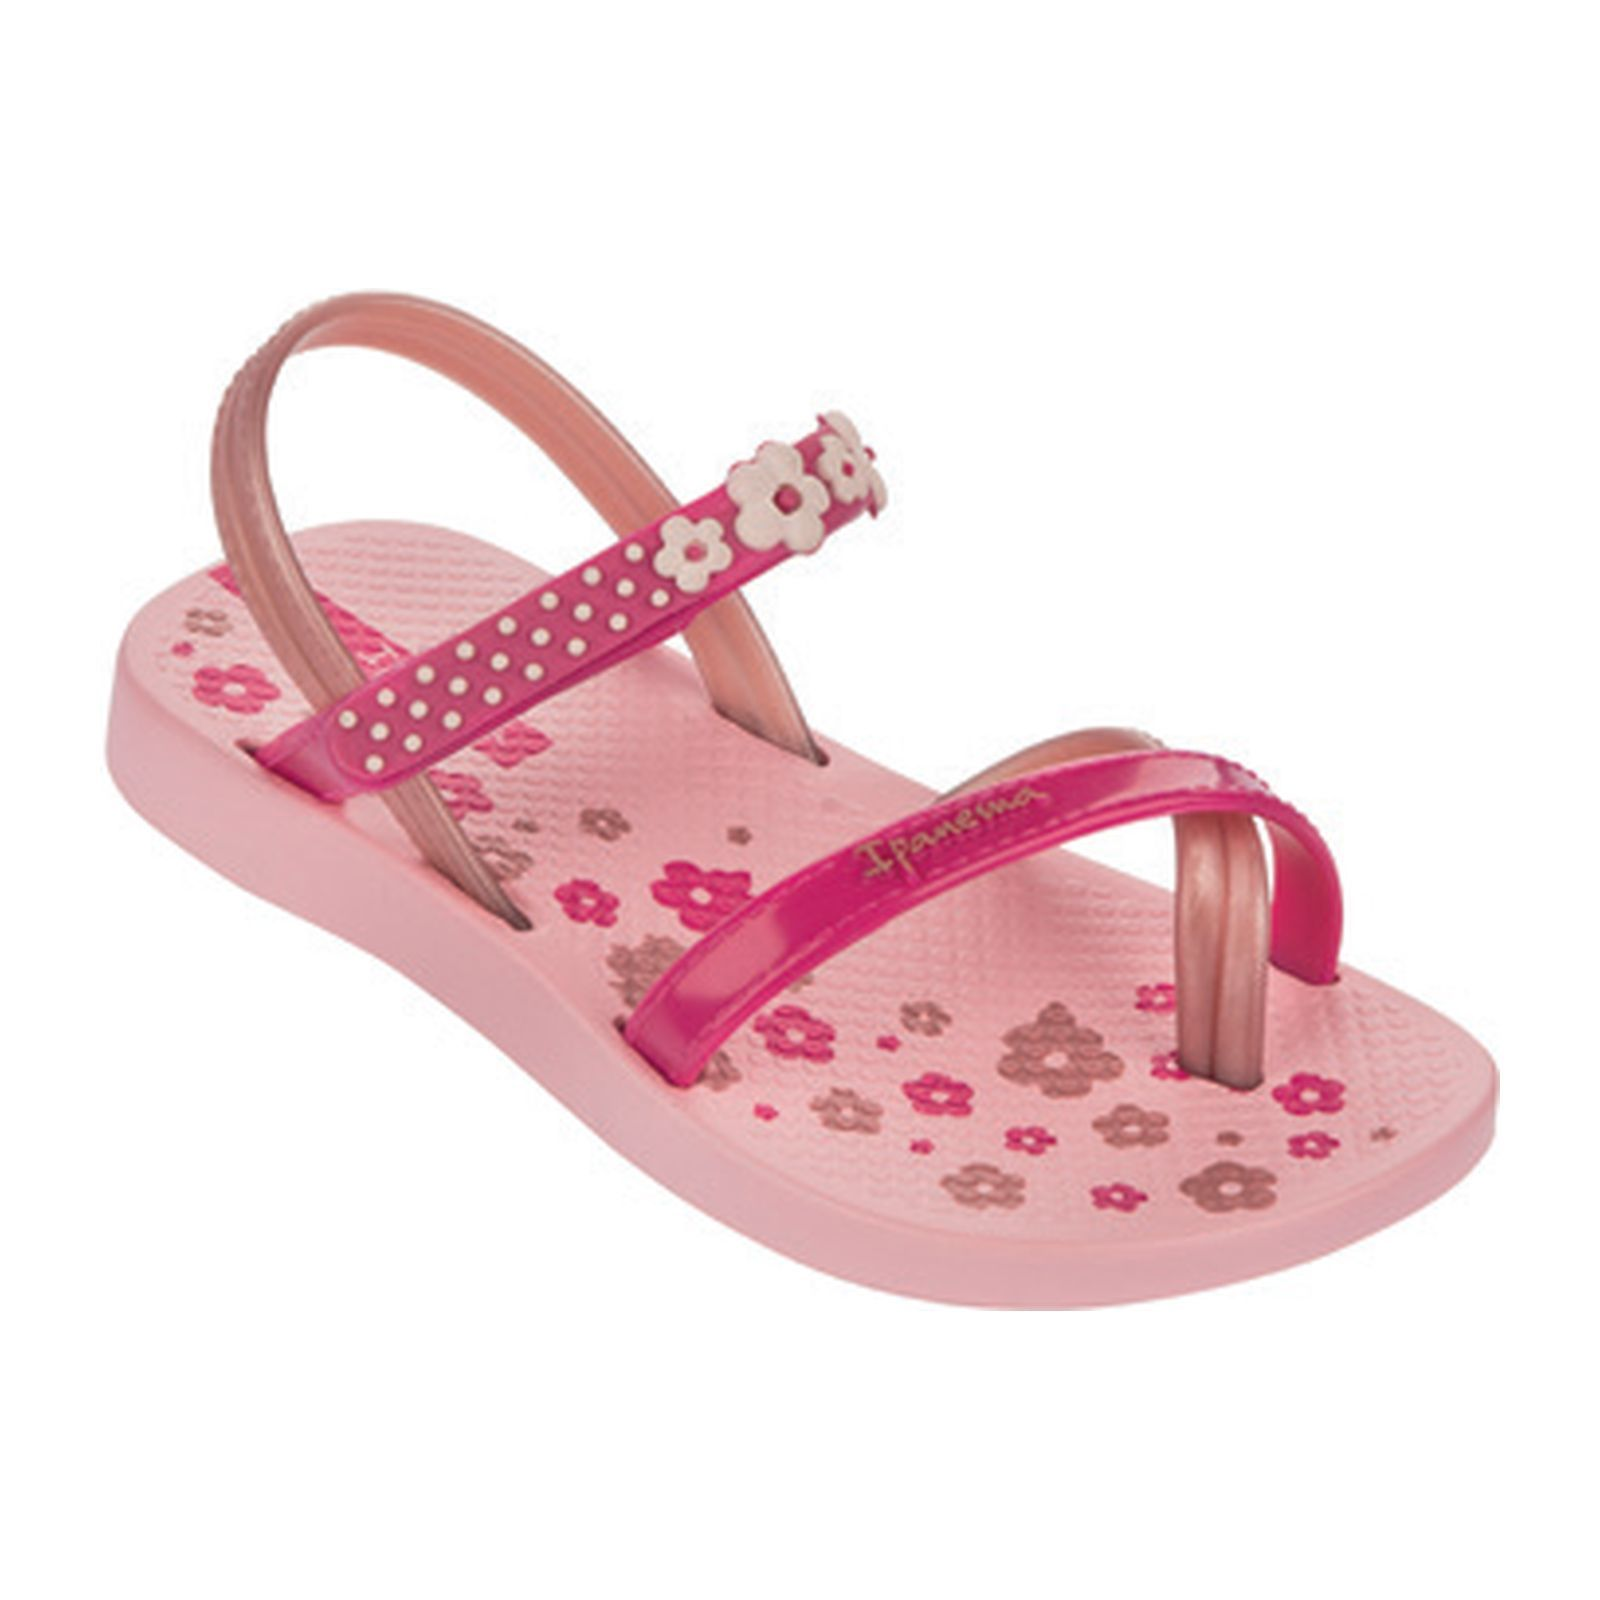 FASHION SANDAL III - Sandales - rose